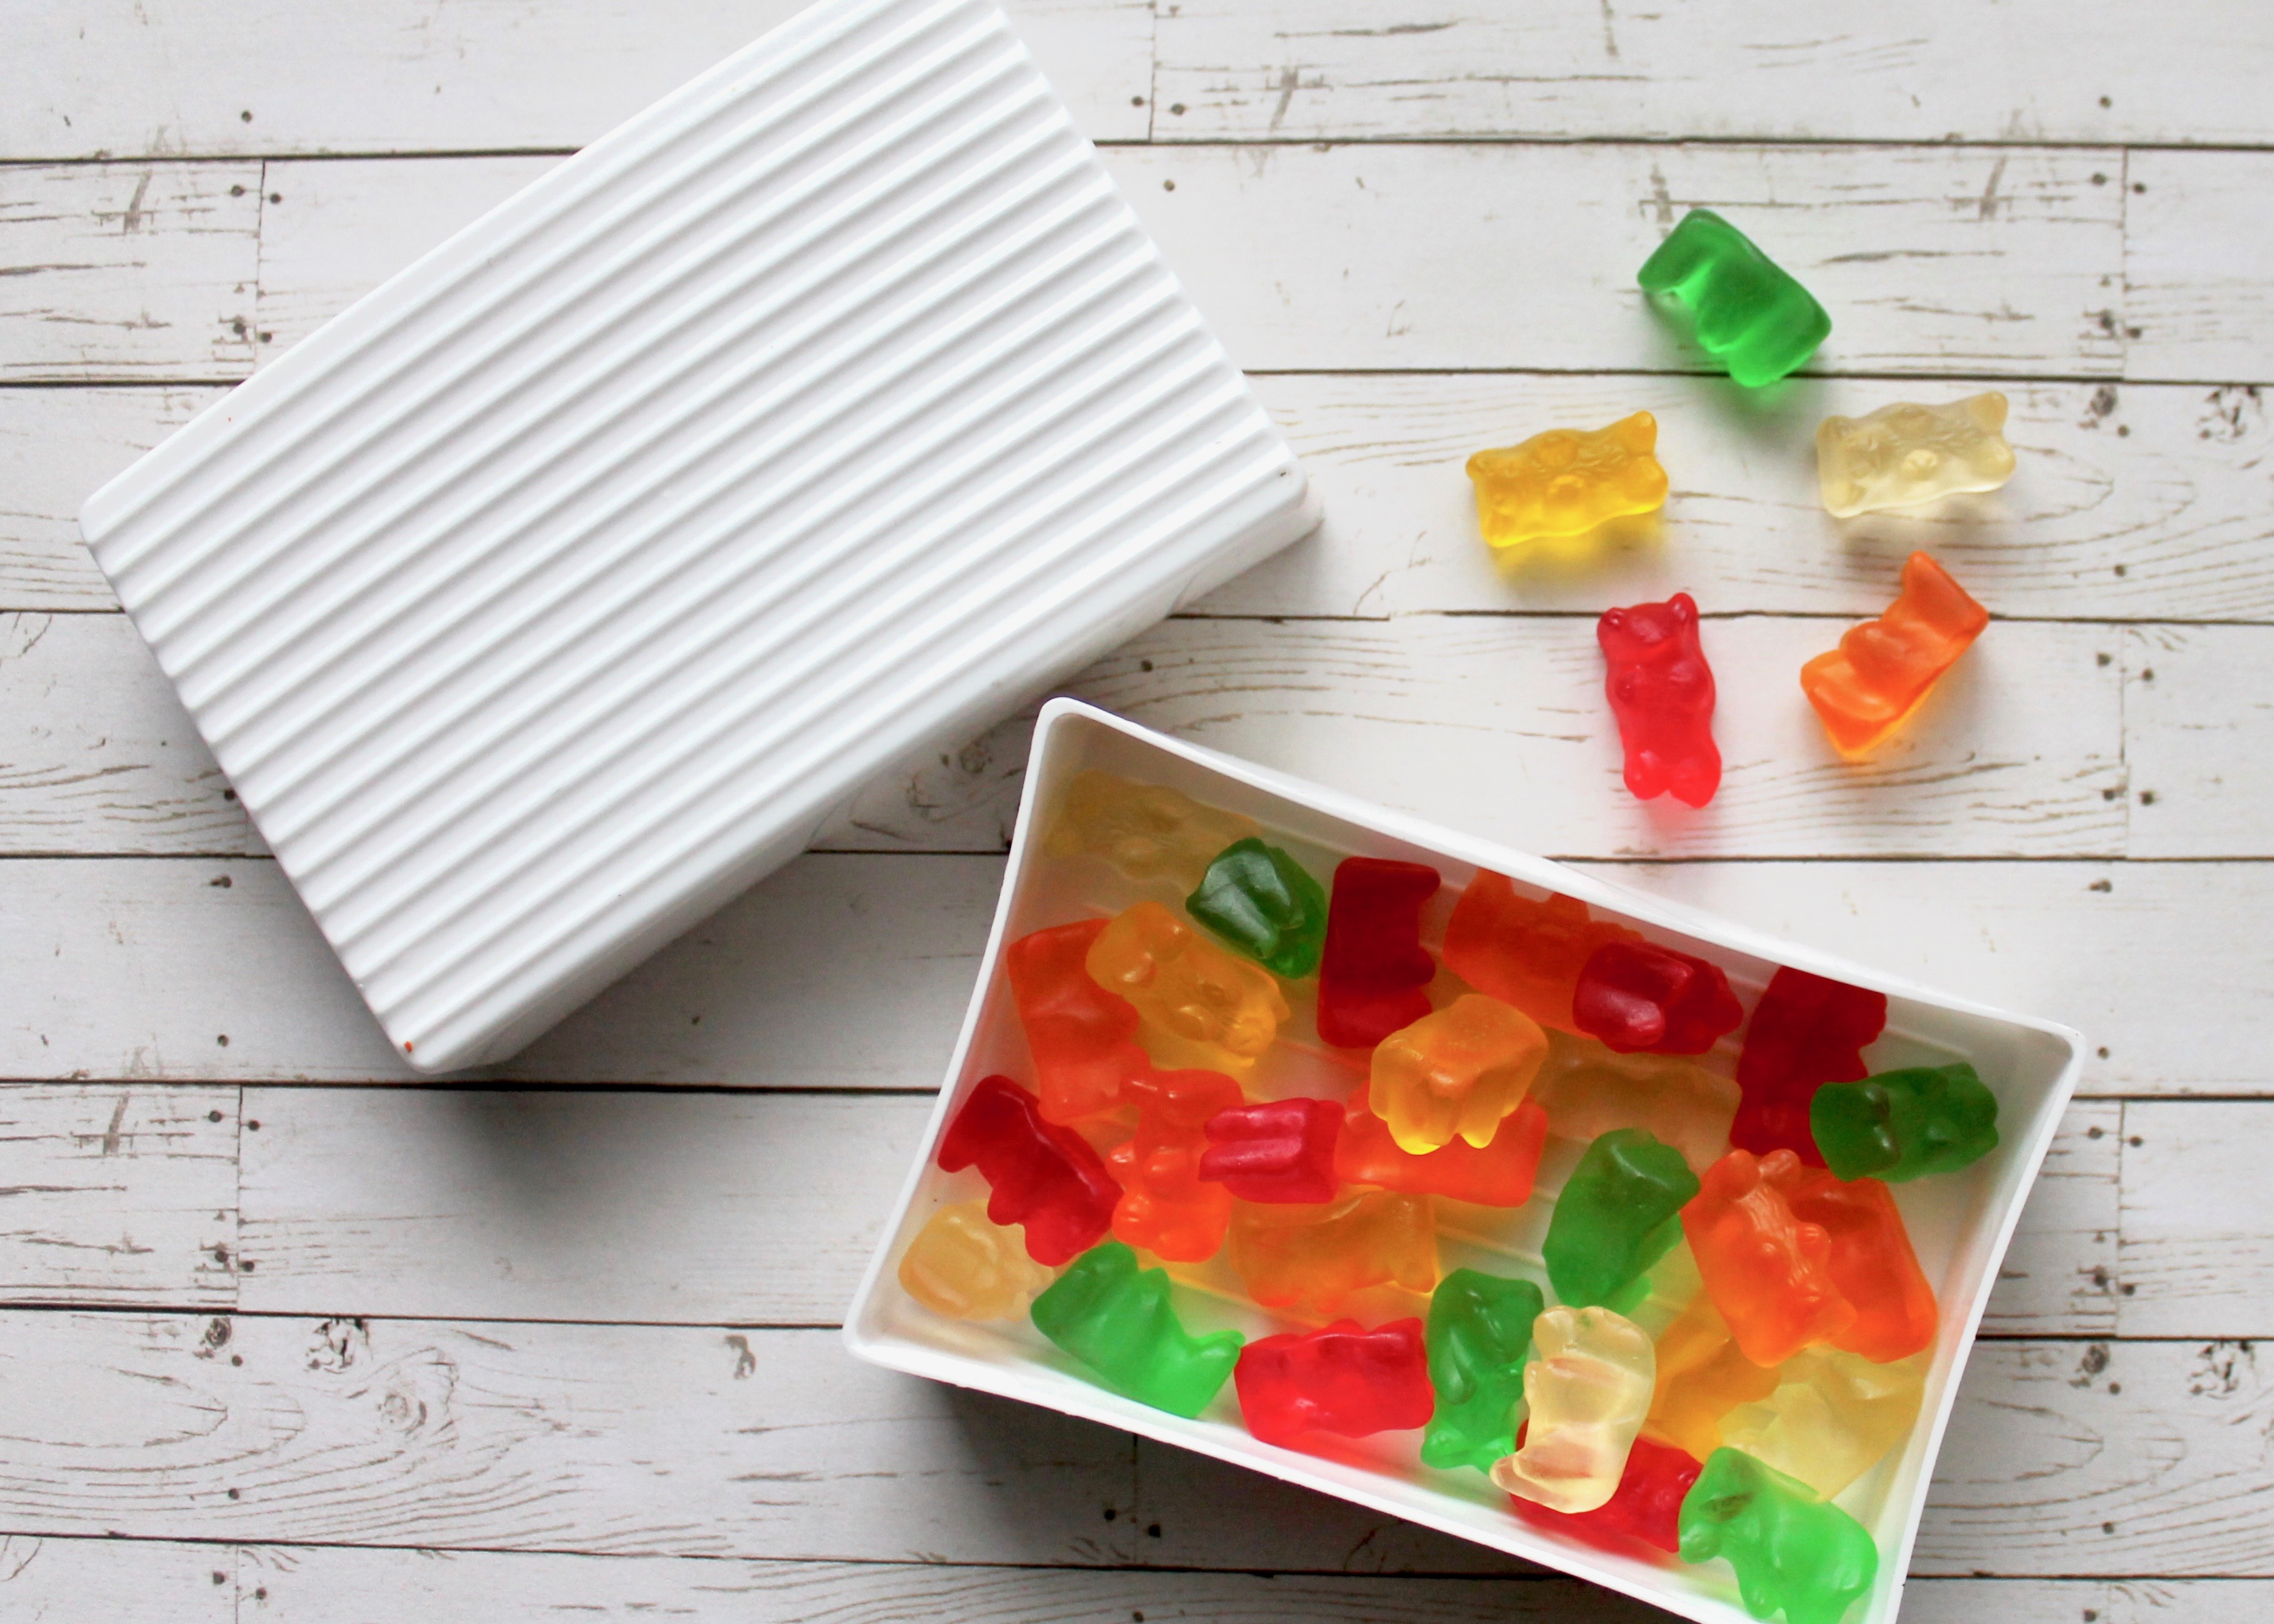 Dollar Store Soap Box Activities for Kids - Candy Holder